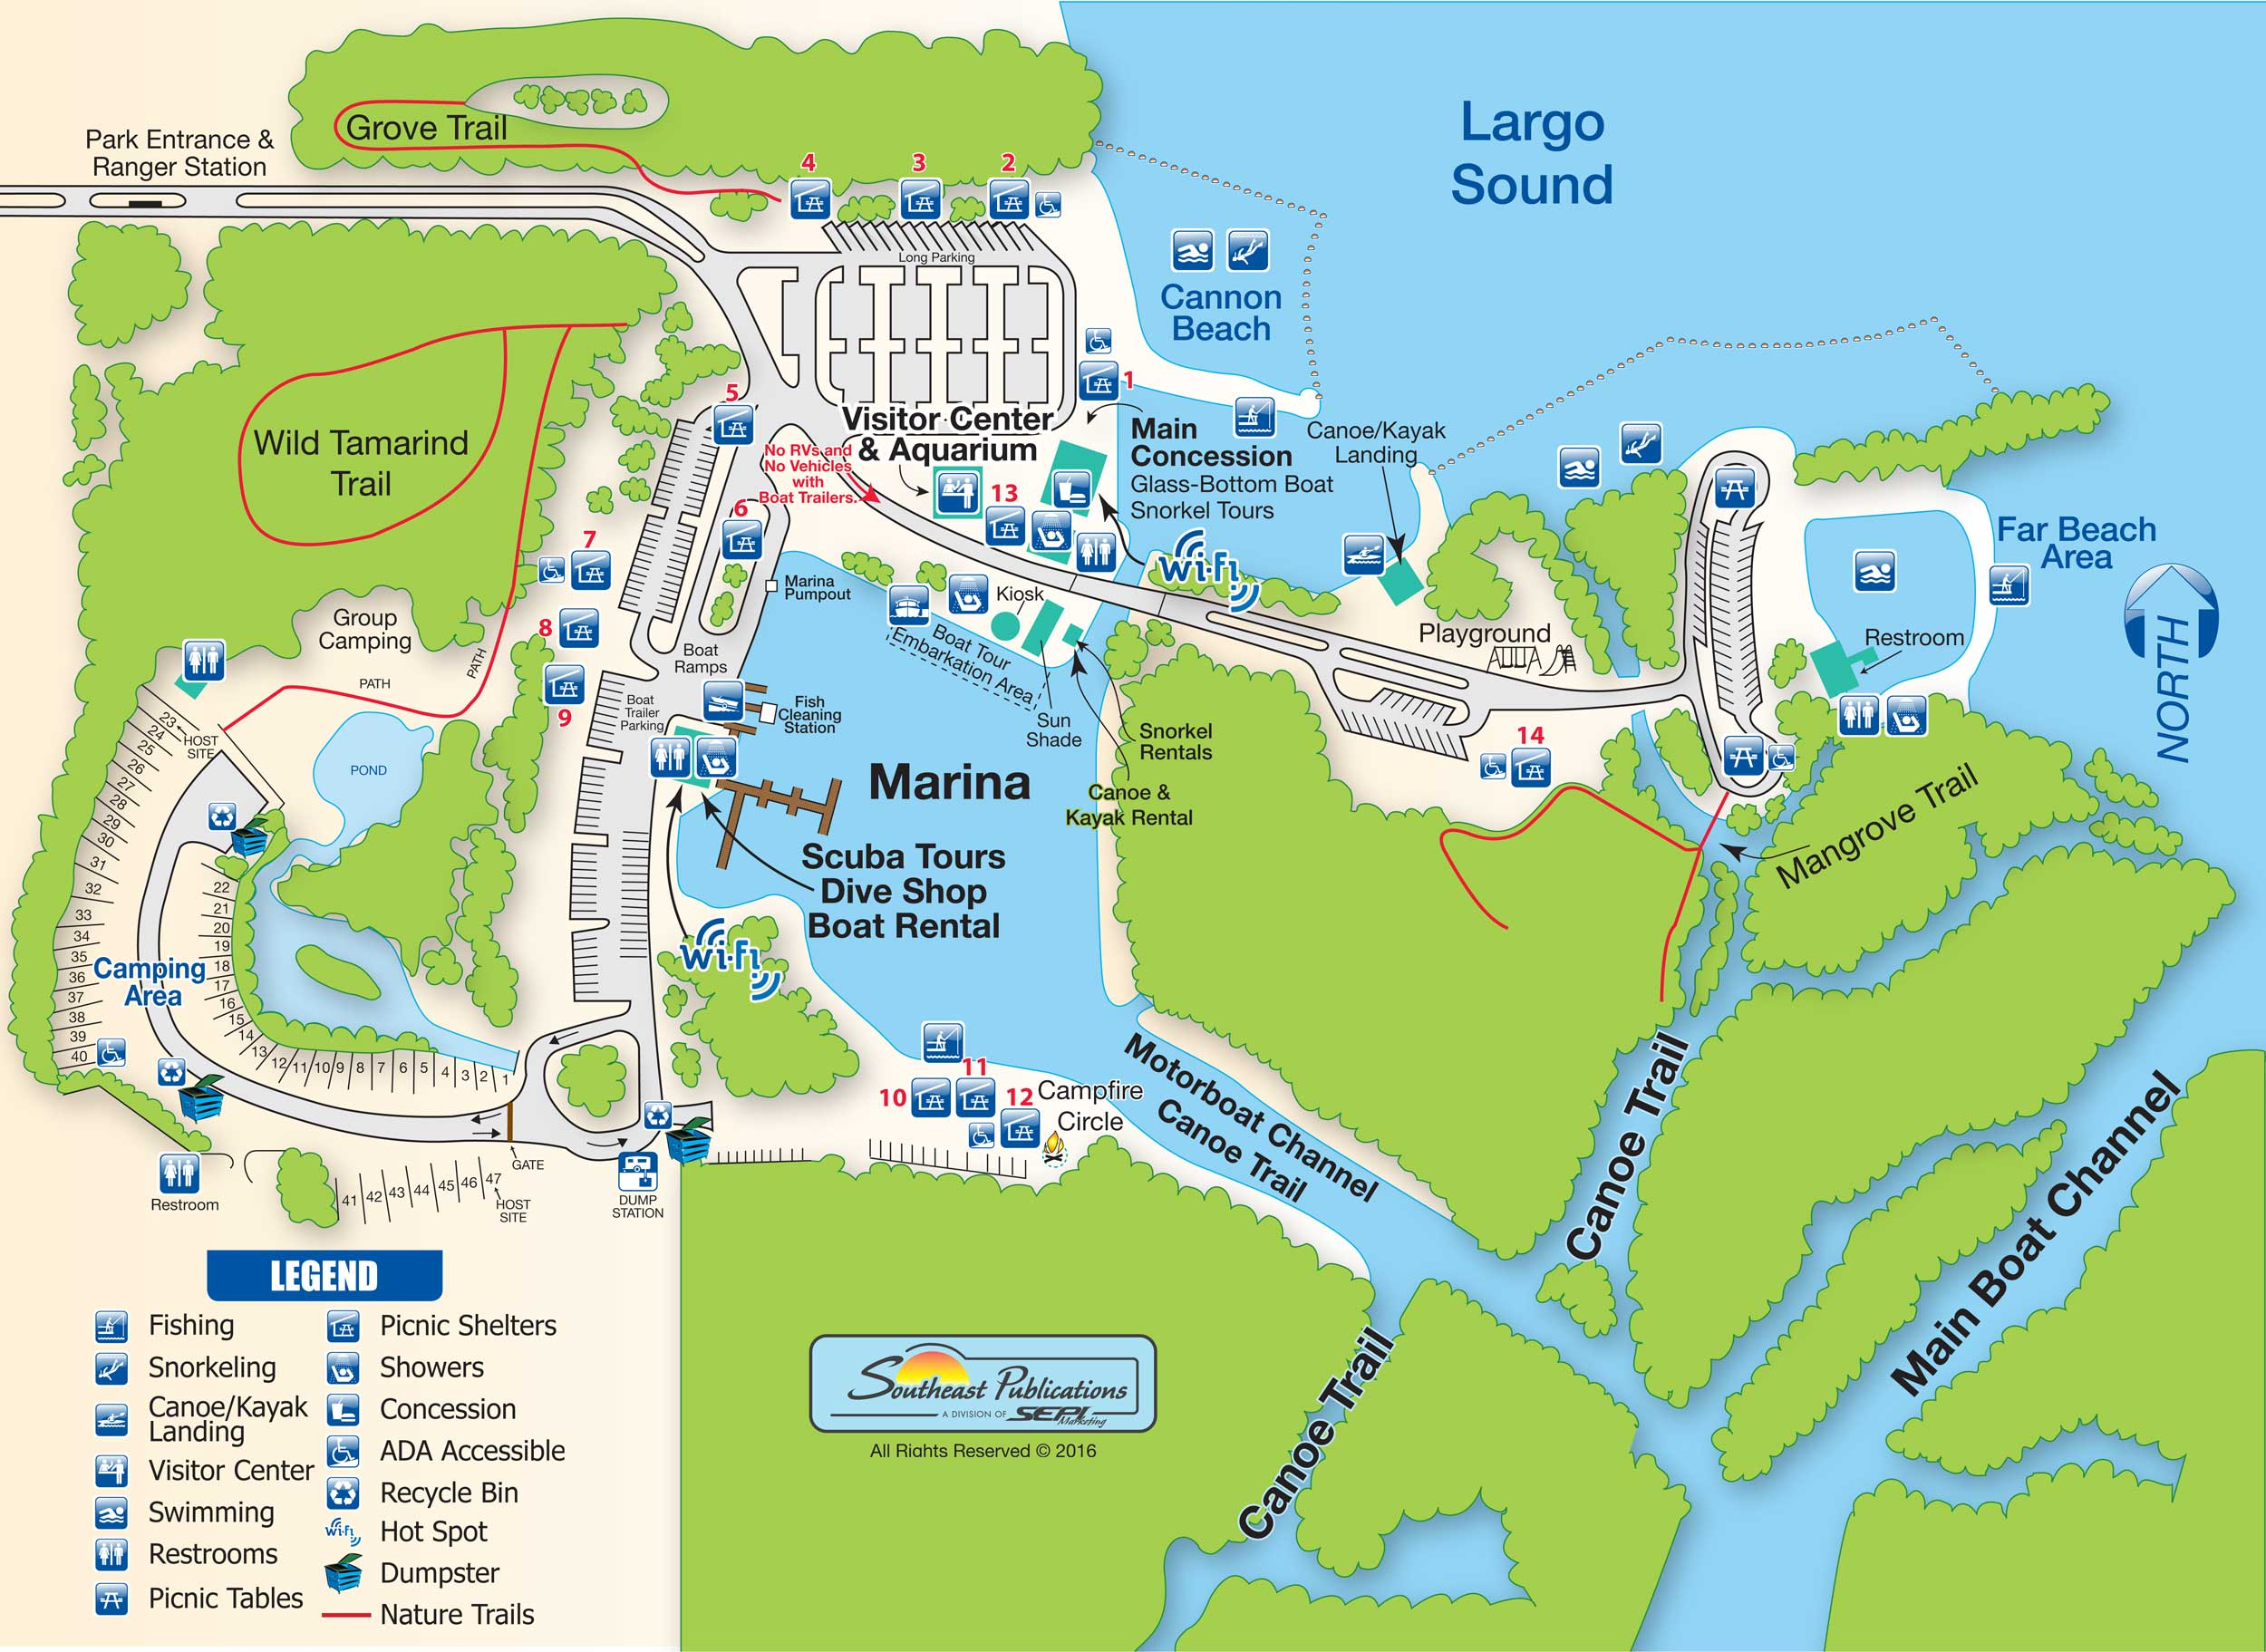 Florida State Parks Rv Camping - Know Your Campground - Florida State Park Campgrounds Map